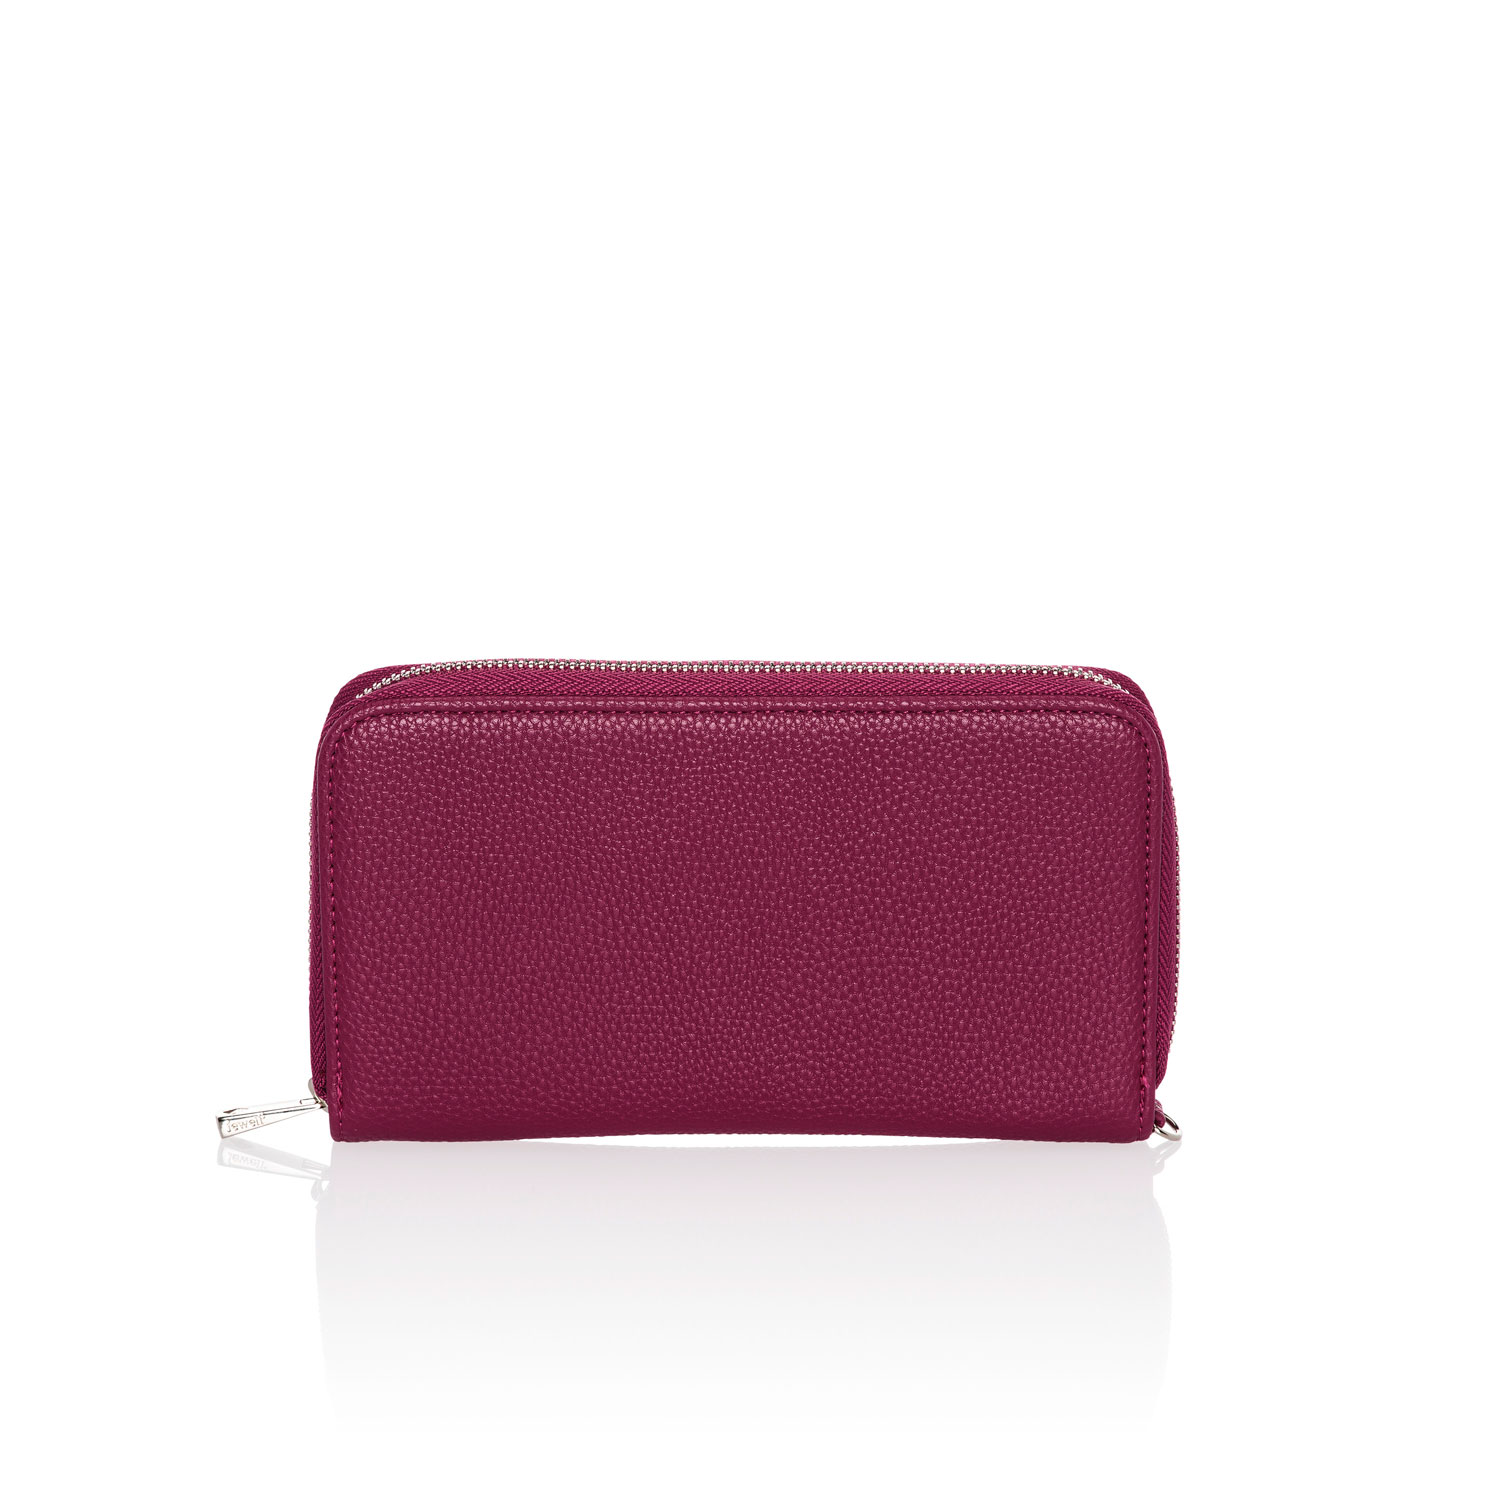 NEW Thirty One All About the Benjamins Wallet Very Cherry Pebble Red